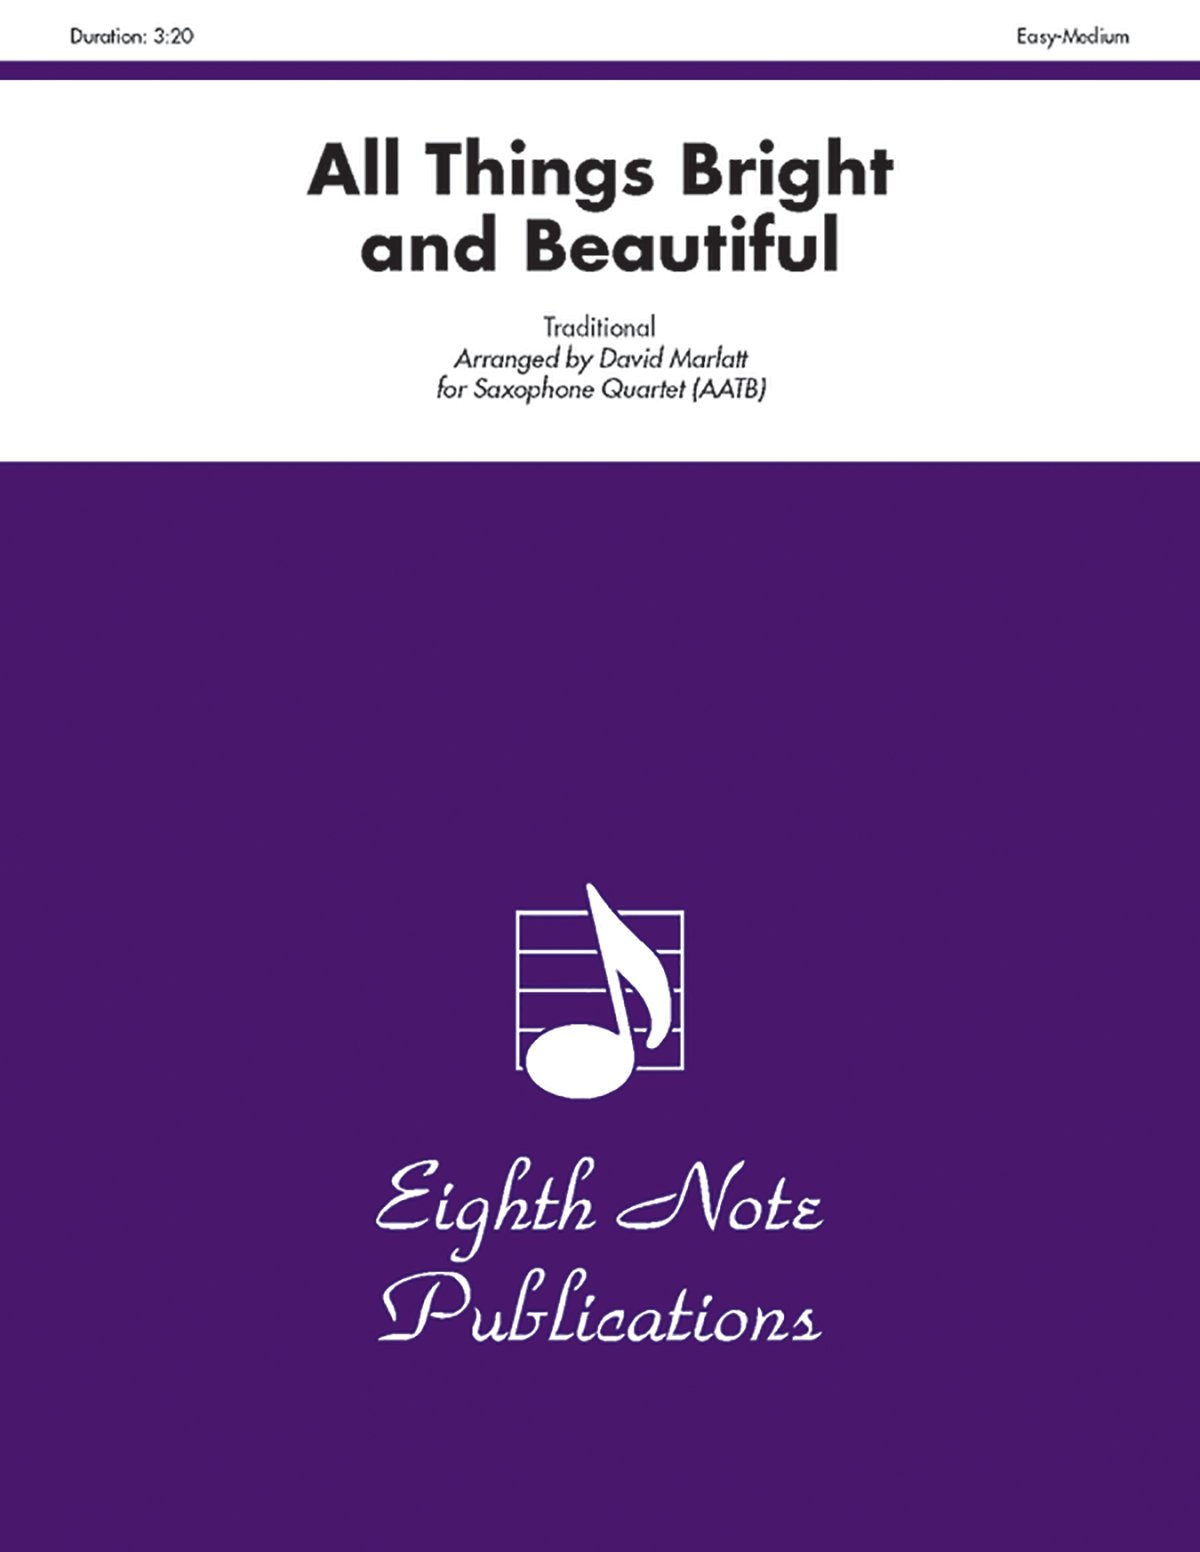 Read Online All Things Bright and Beautiful: Score & Parts (Eighth Note Publications) PDF